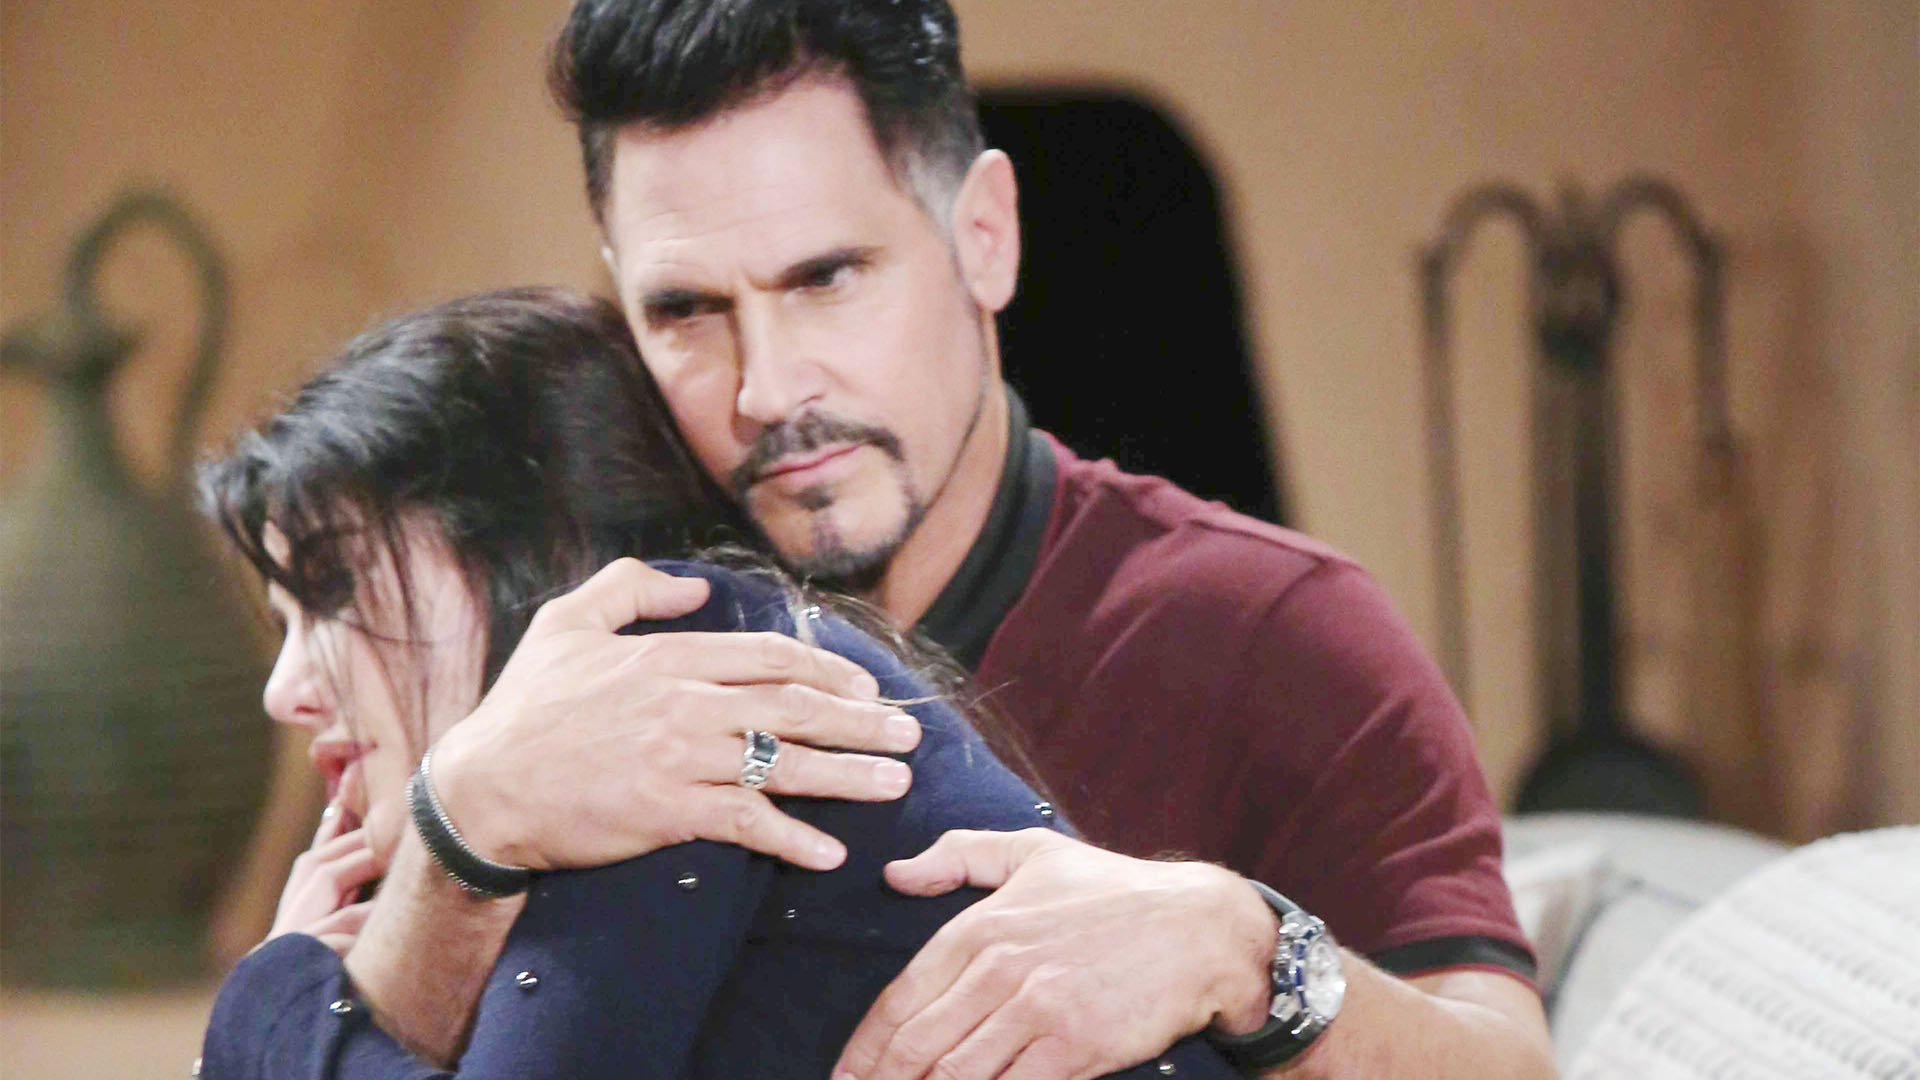 Bill comforts Steffy in her time of need and gives her encouragement to expect more from the men in her life.